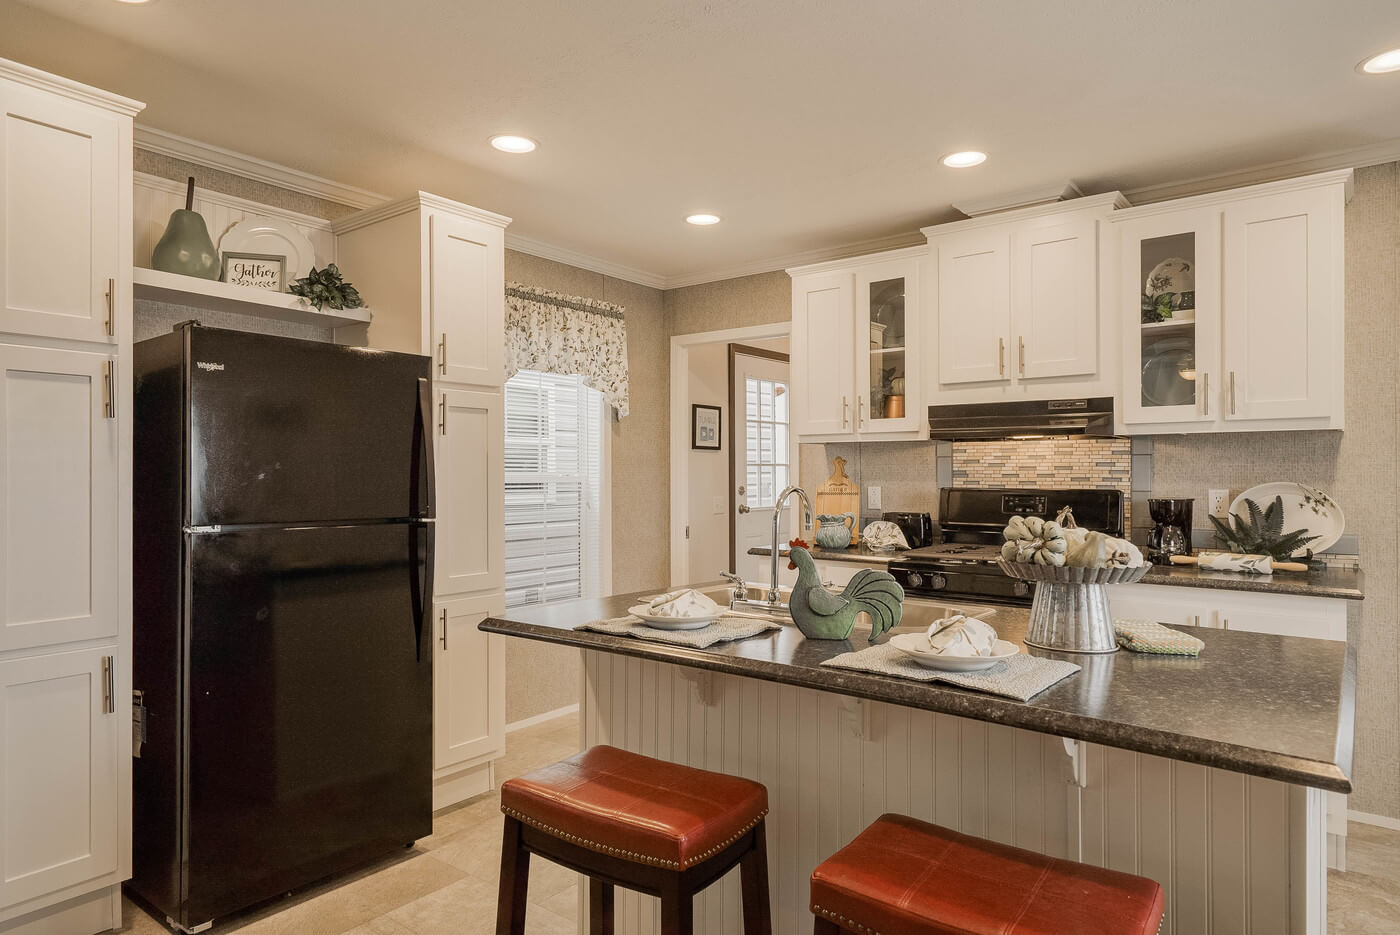 Kitchen Cabinets And Design Eagle River Eagle River Homes | Turning Your Housing Dreams Into Reality